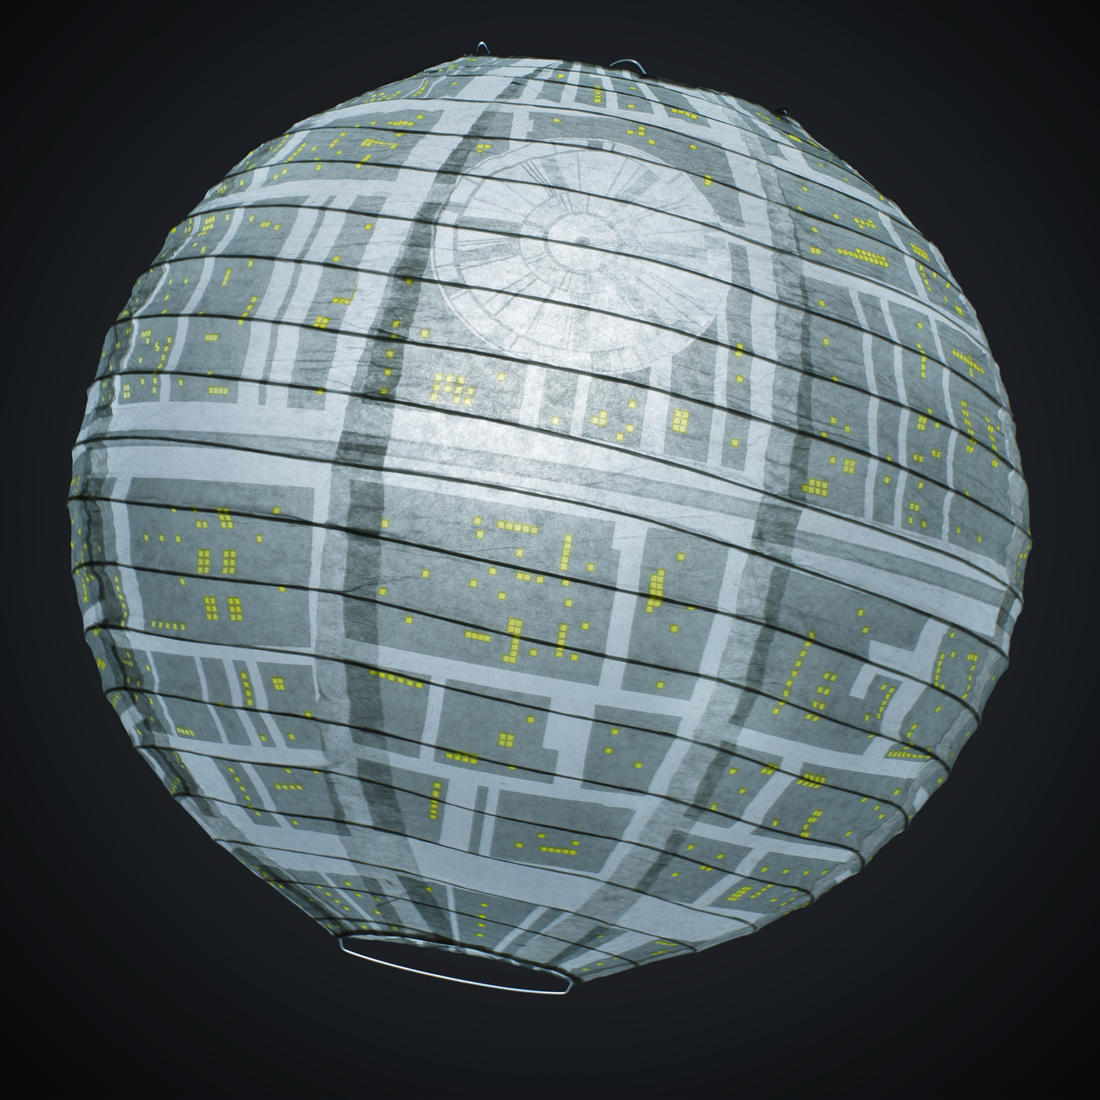 star wars death star lamp shade getdigital. Black Bedroom Furniture Sets. Home Design Ideas